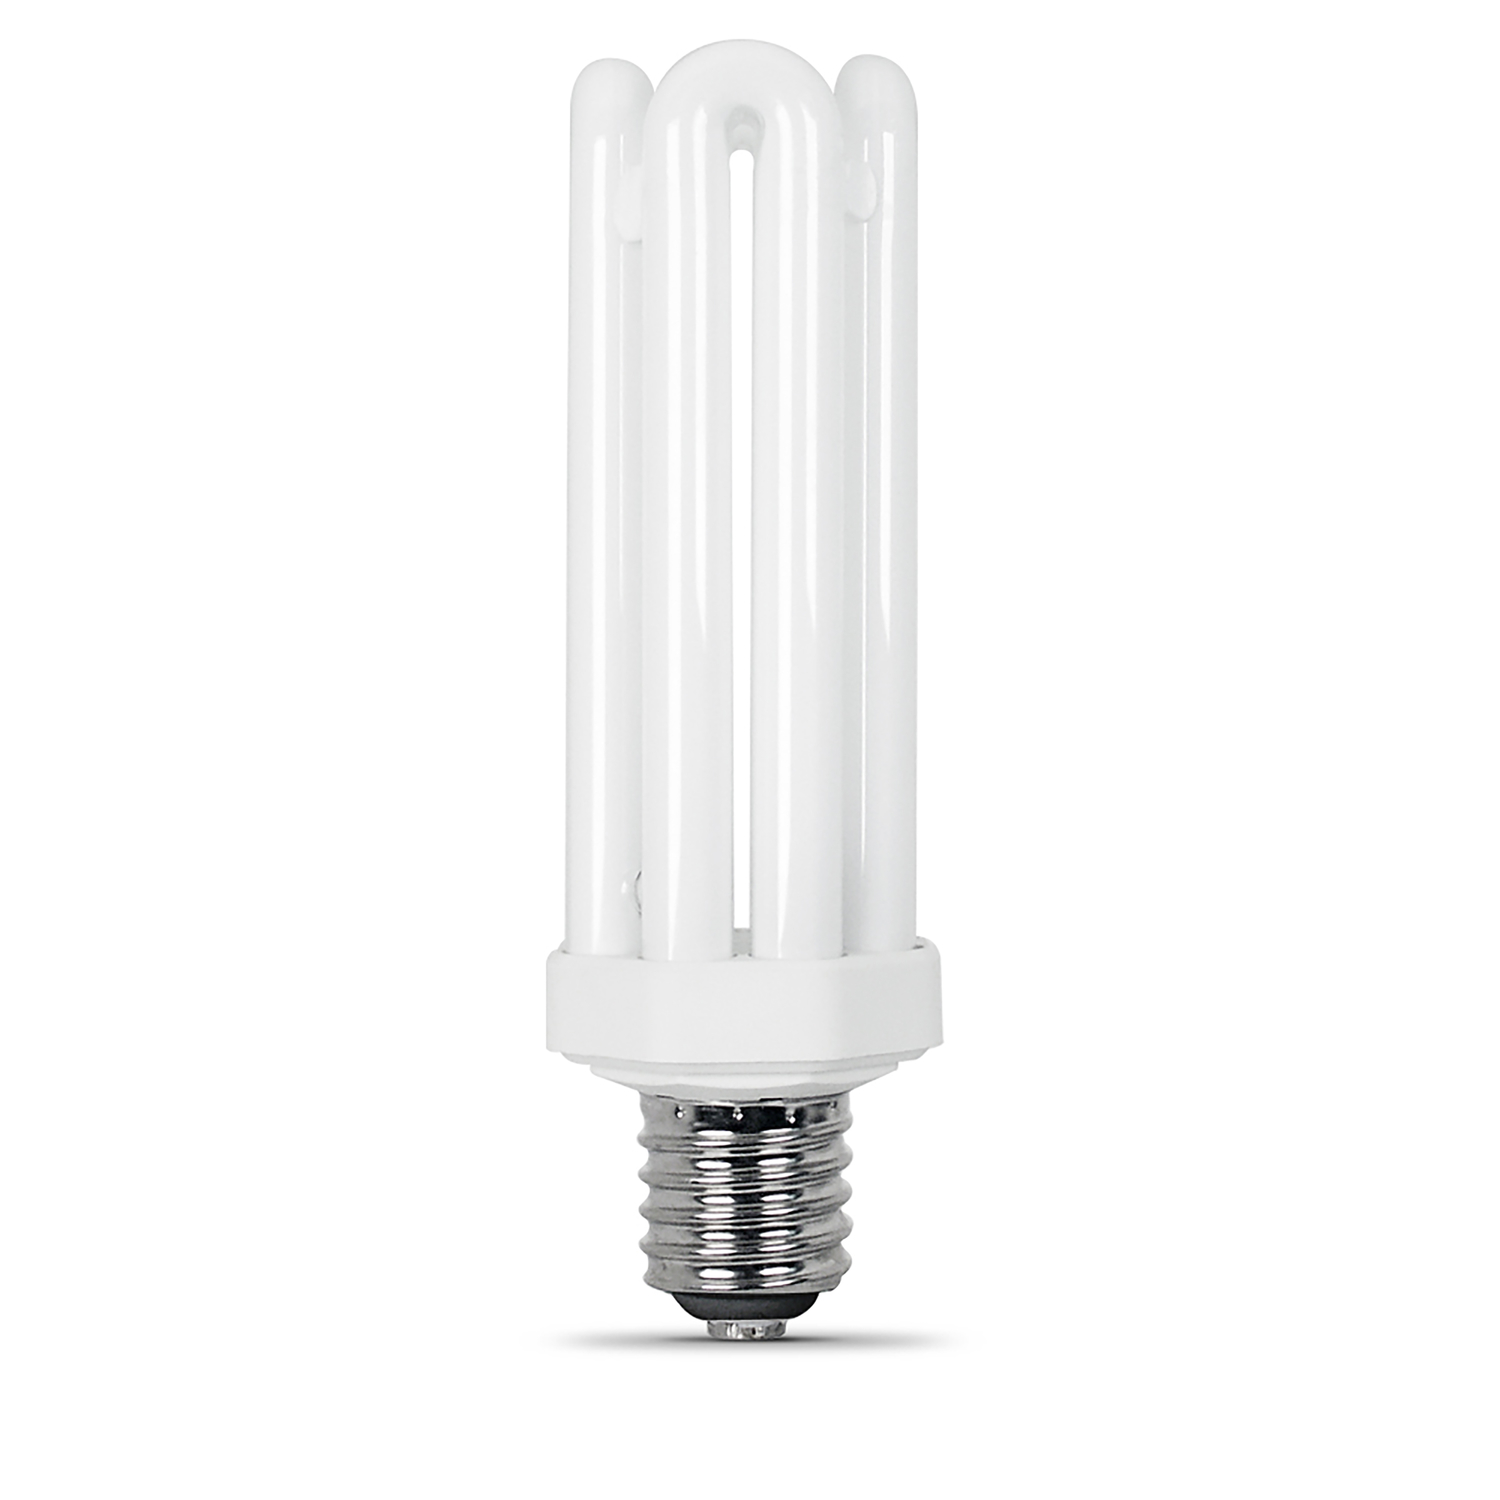 FEIT  Electric  65 watts PL  3.12 in. Daylight  CFL Bulb  4550 lumens Utility  1 pk